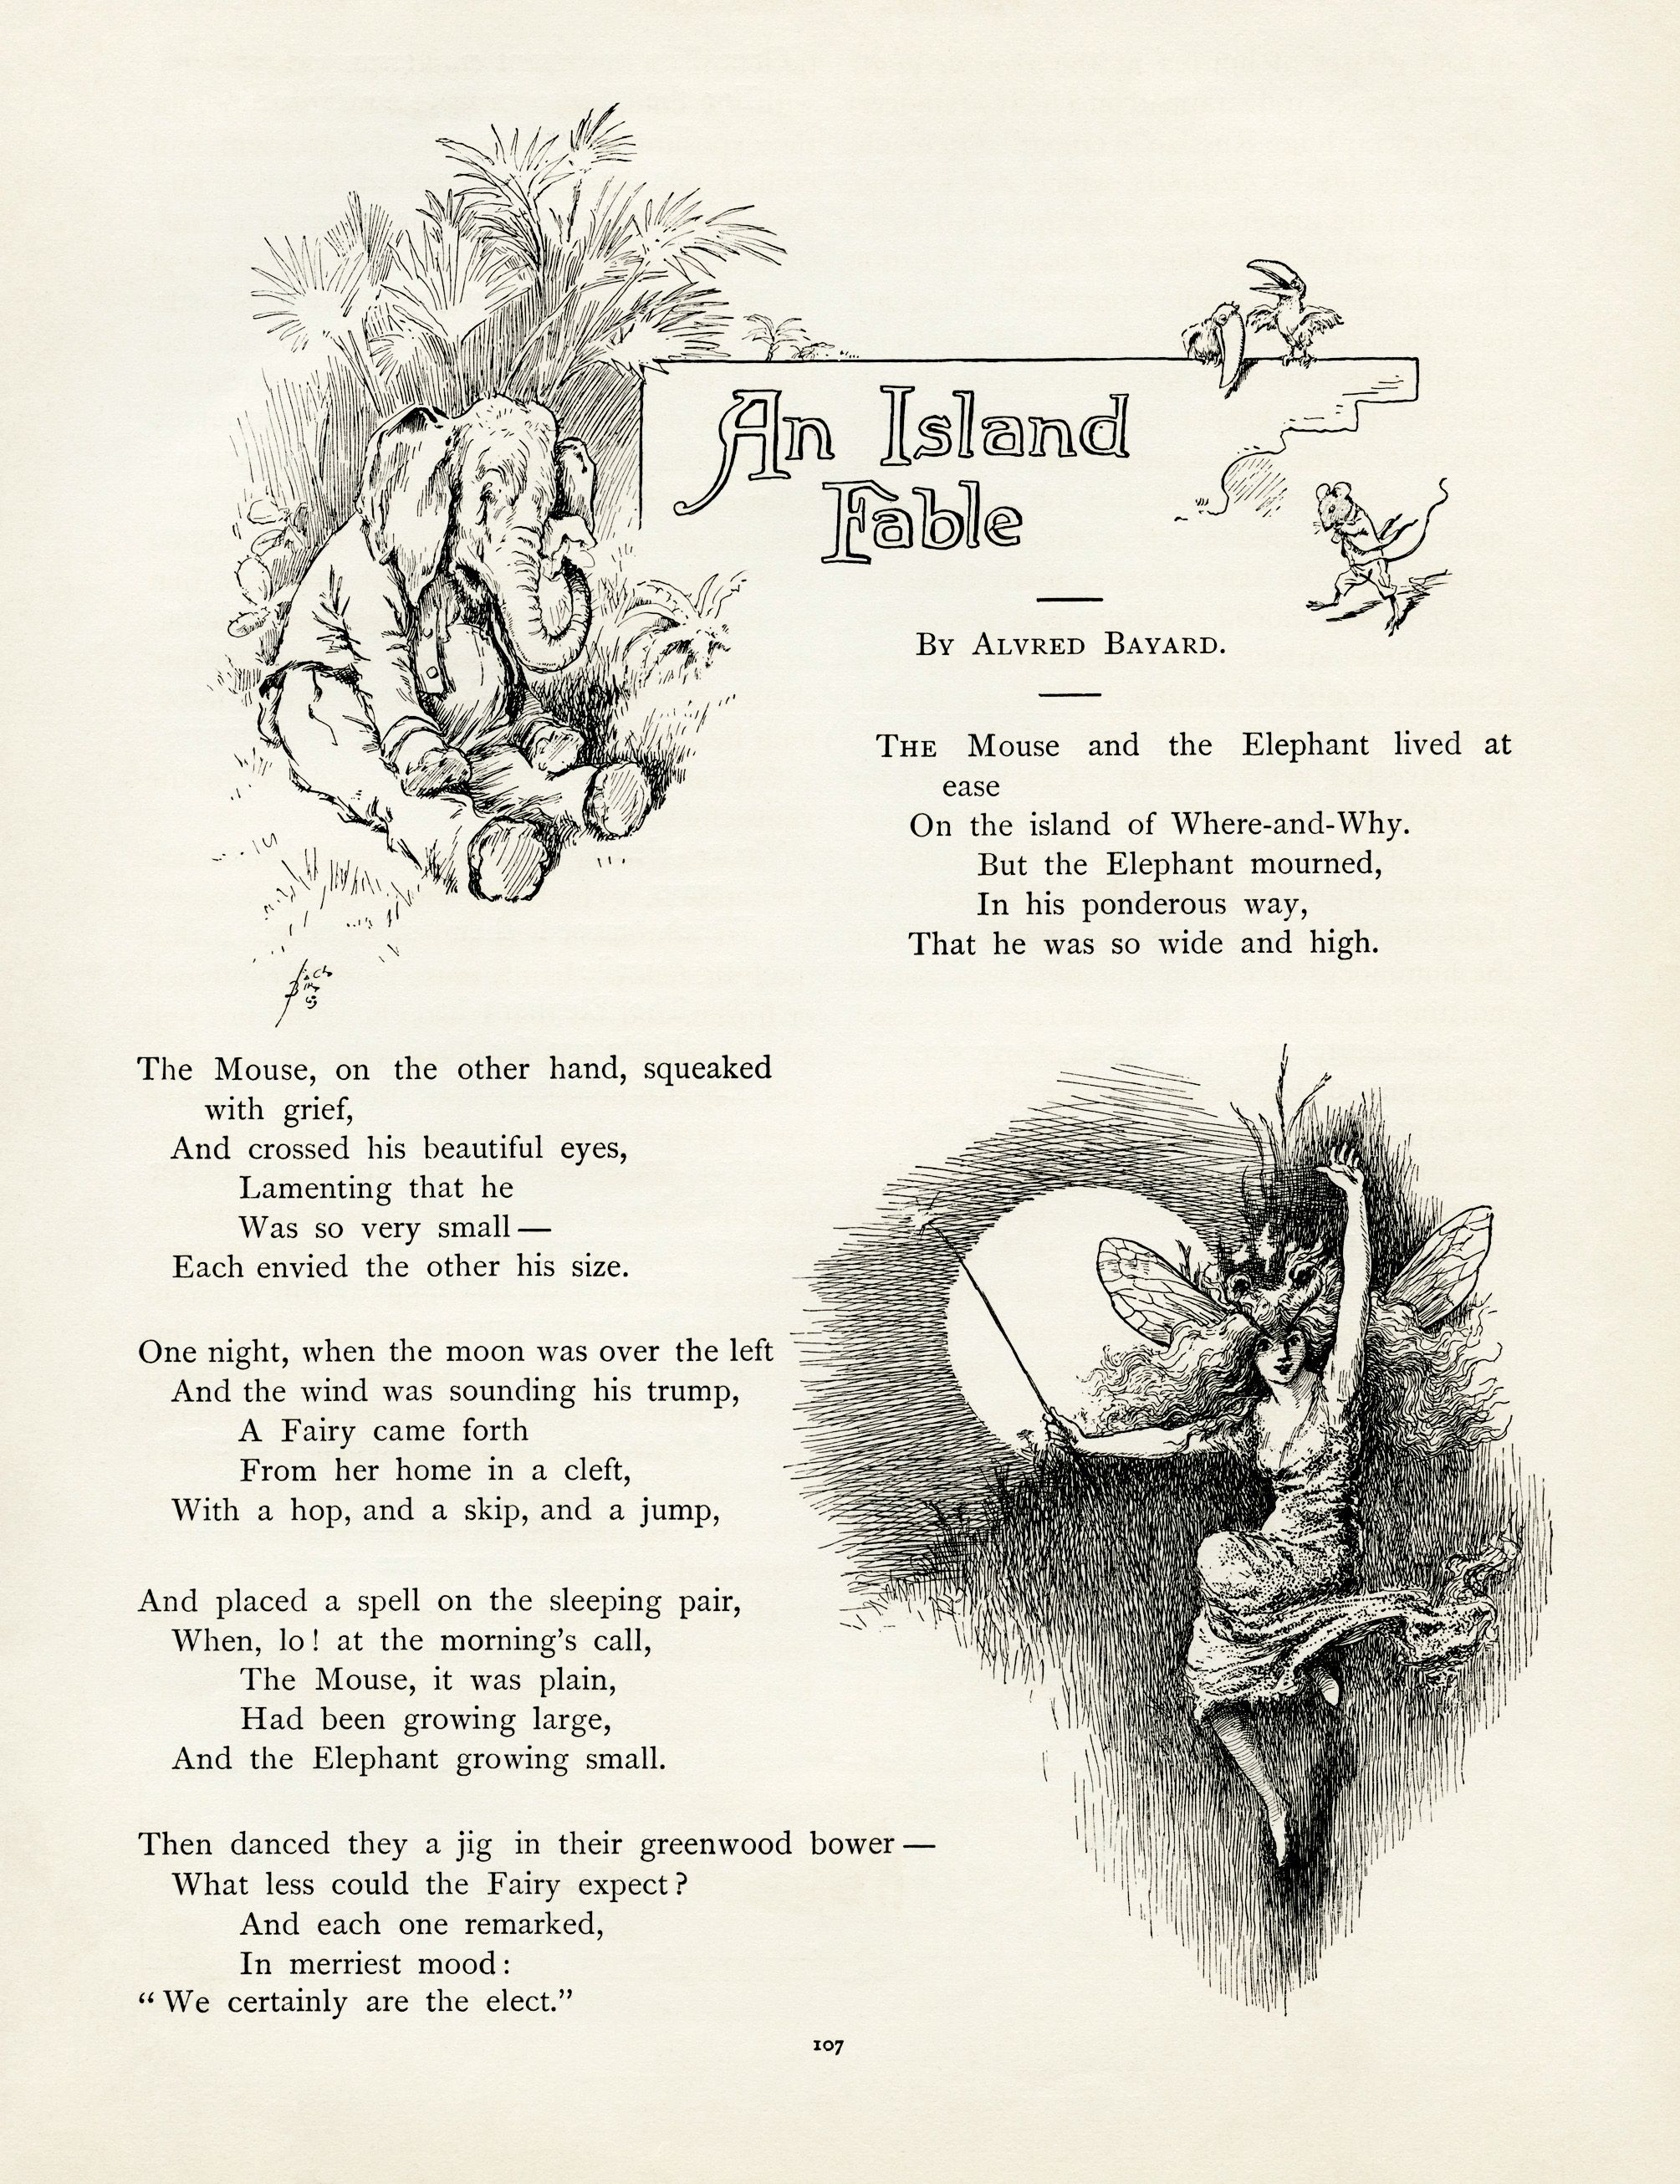 Old Design Shop Free Digital Images Three Vintage Storybook Pages An Island Fable